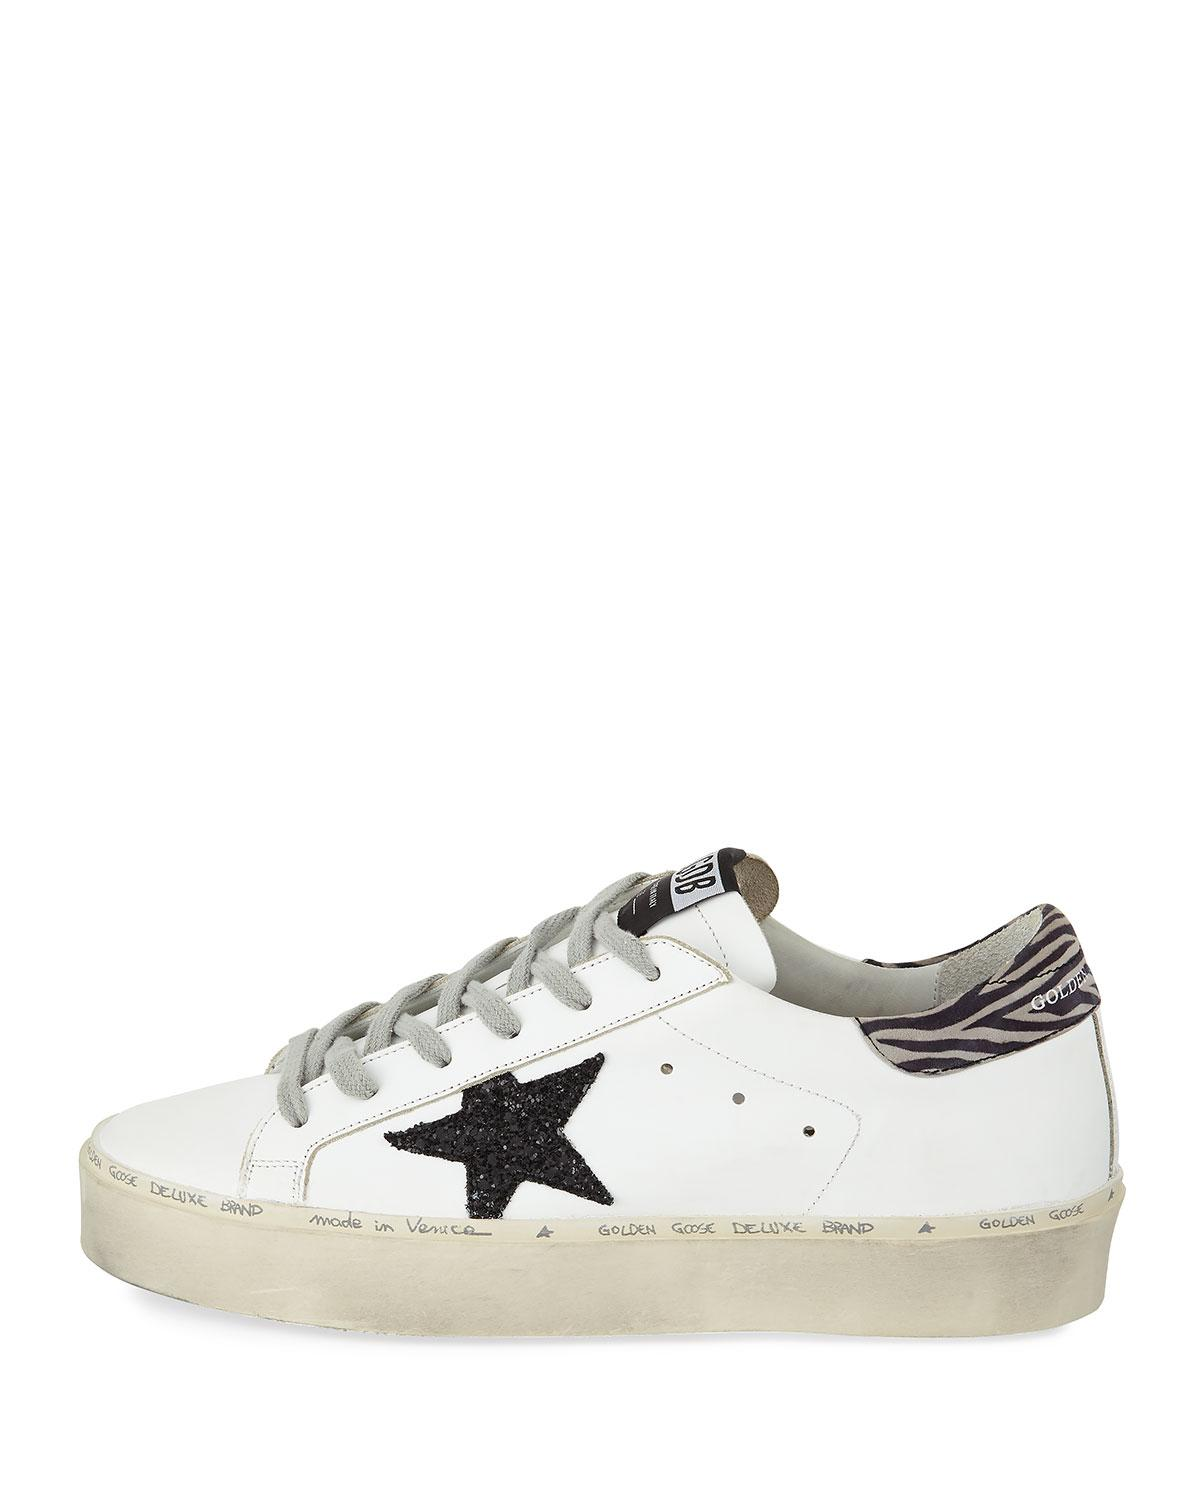 36726a28c508 Lyst - Golden Goose Deluxe Brand Hi Star Platform Sneakers in White